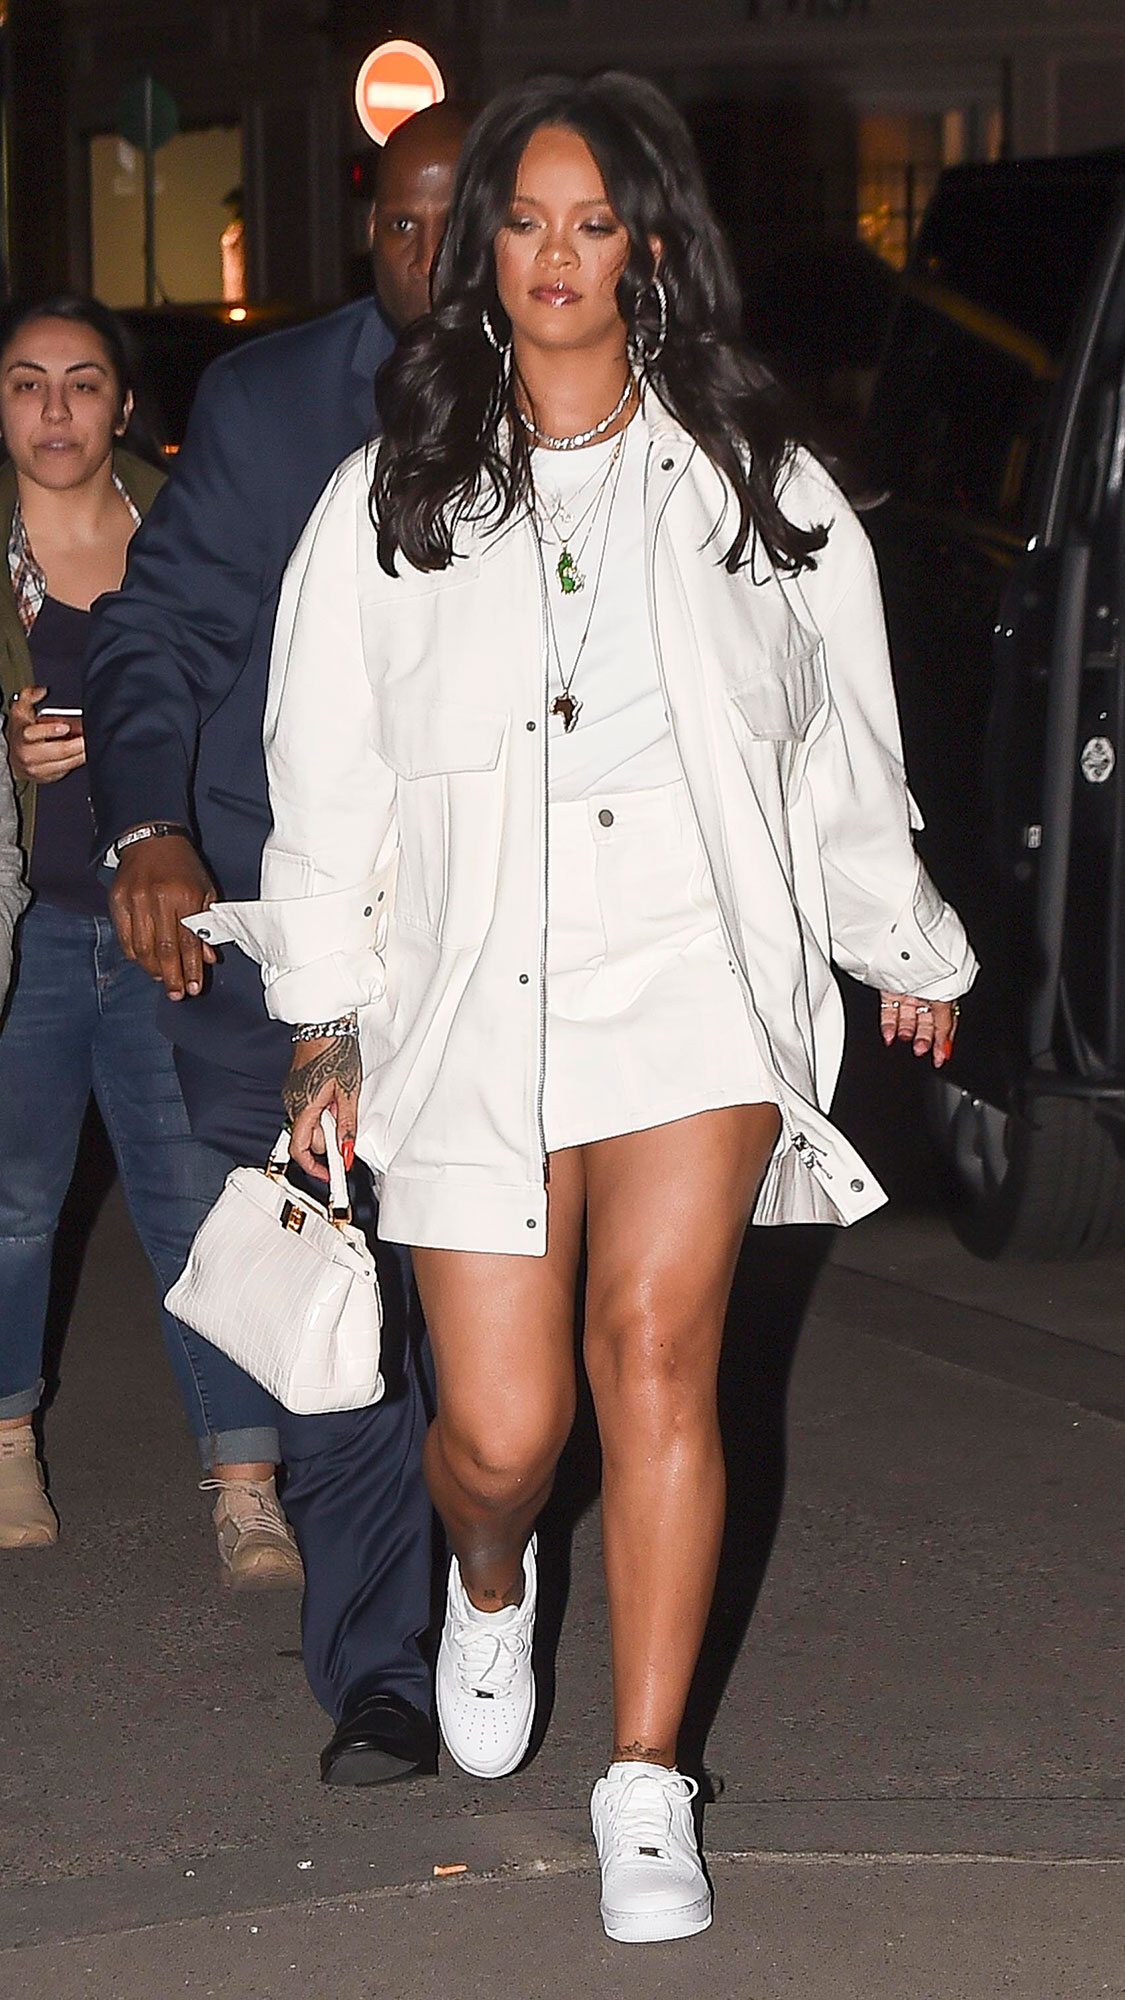 Rihanna Memorial Day White - When leaving her Fenty fashion launch on May 22, 2019, the founder accessorized her white minidress with a matching bomber, purse and sneakers.